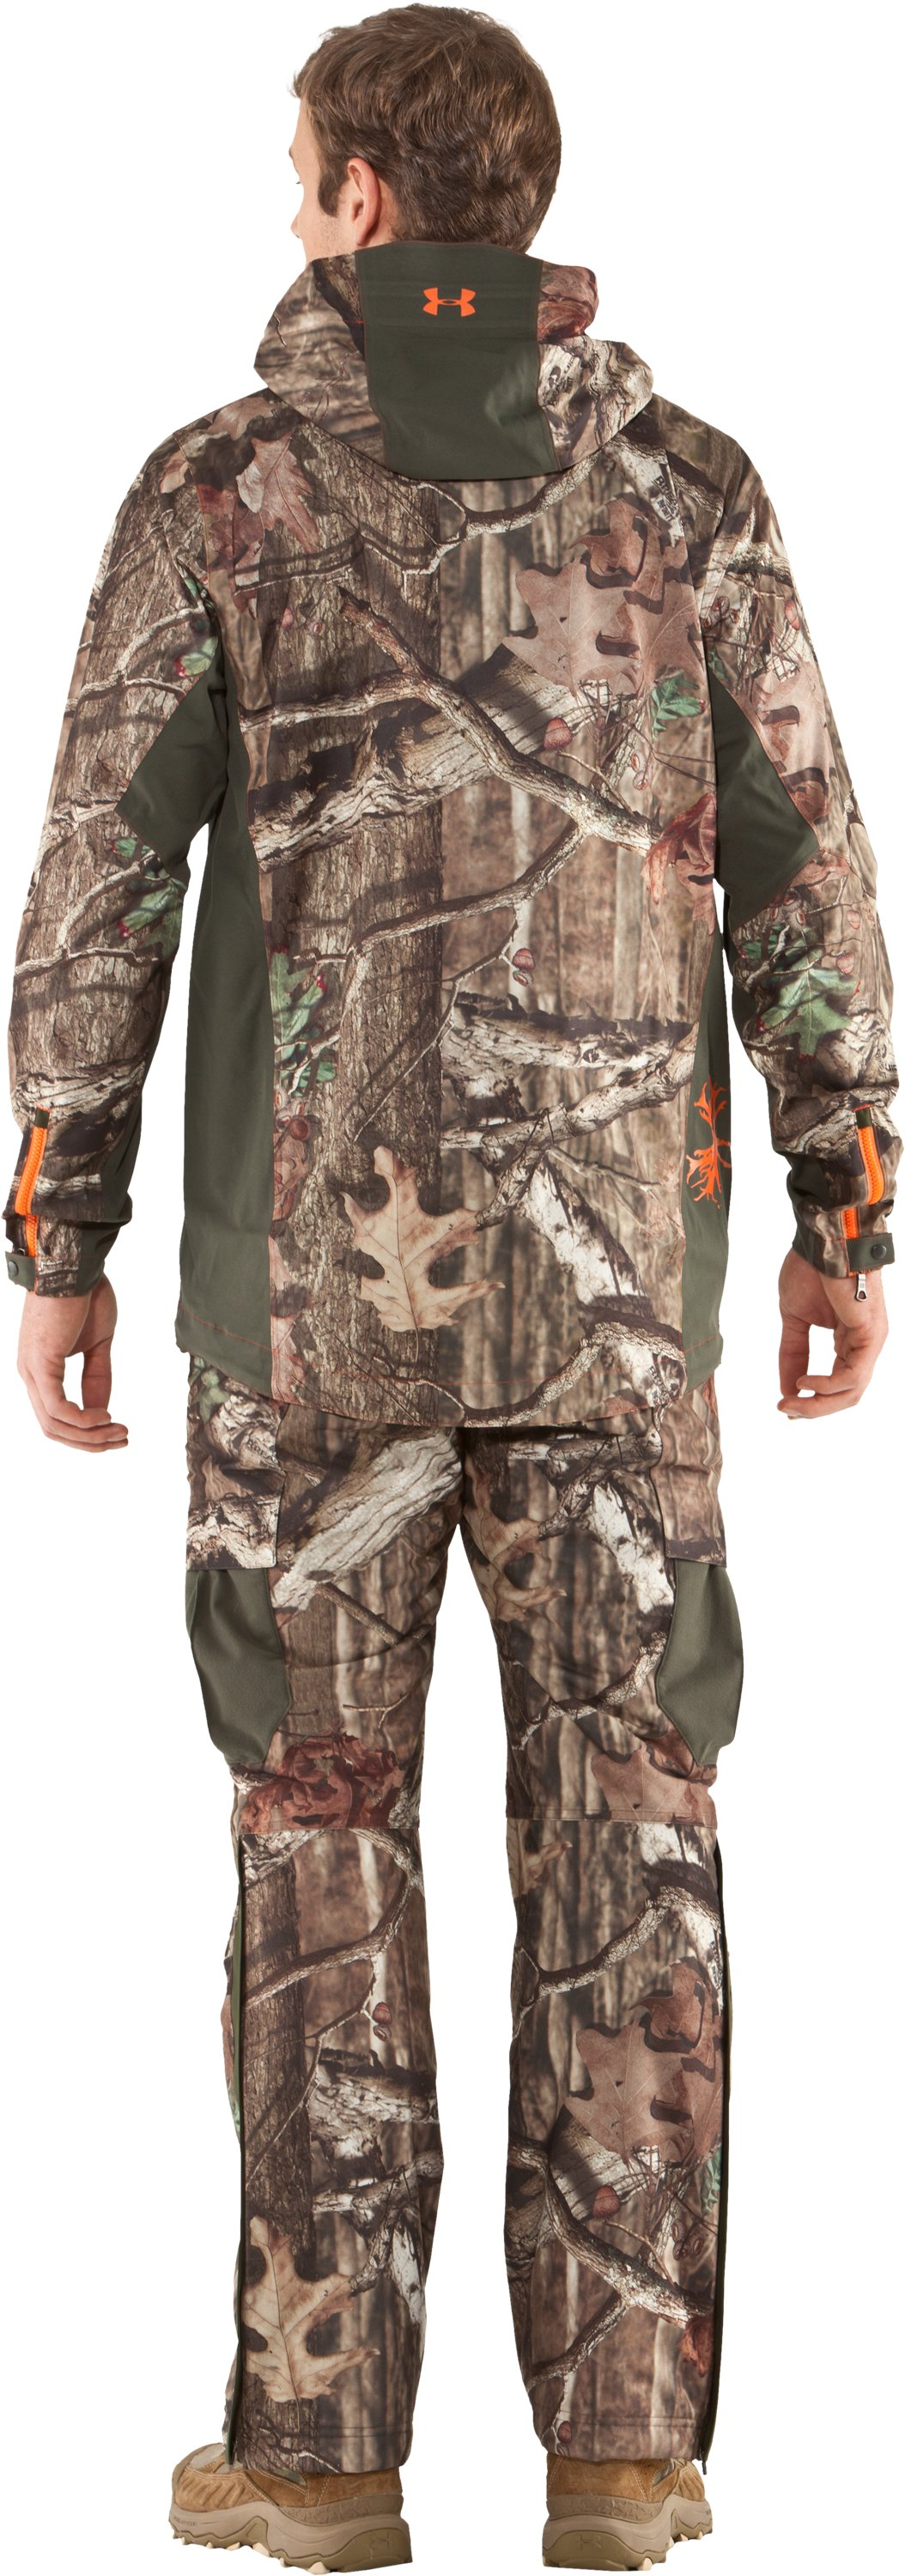 Men's Ridge Reaper® Shell Camo Hunting Jacket, Mossy Oak Break-Up Infinity, Back